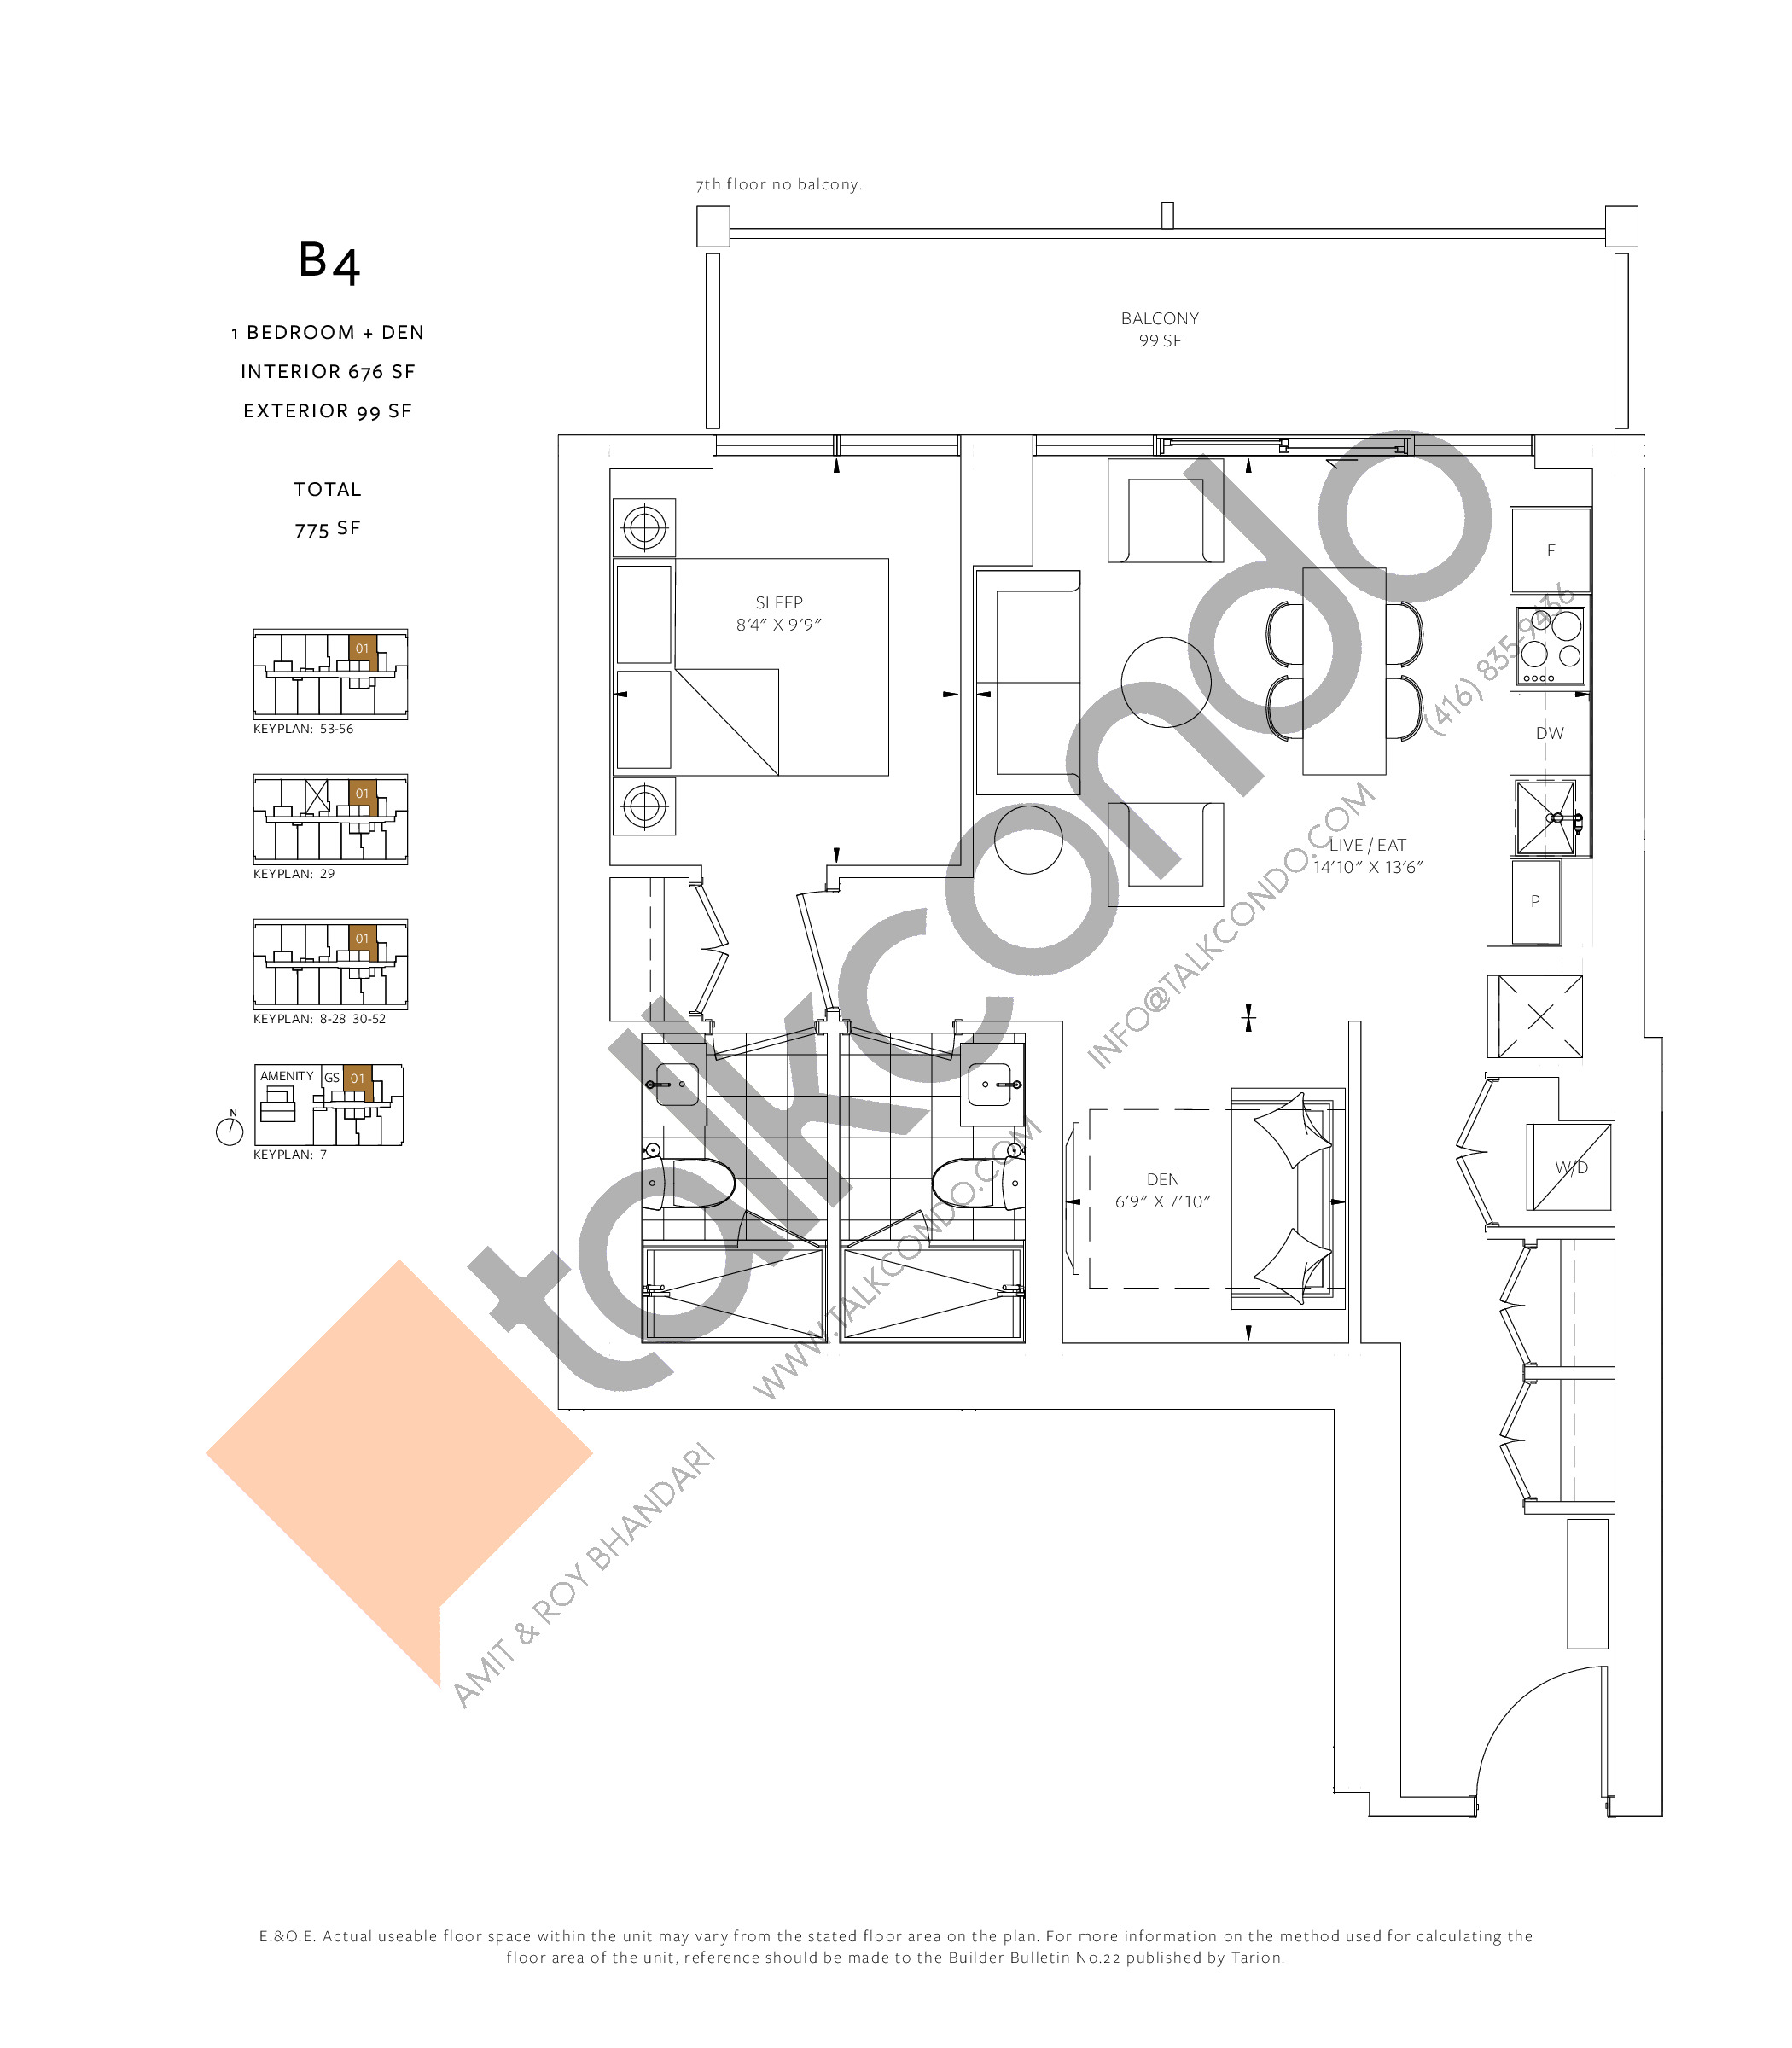 B4 Floor Plan at 88 Queen Condos - Phase 2 - 676 sq.ft